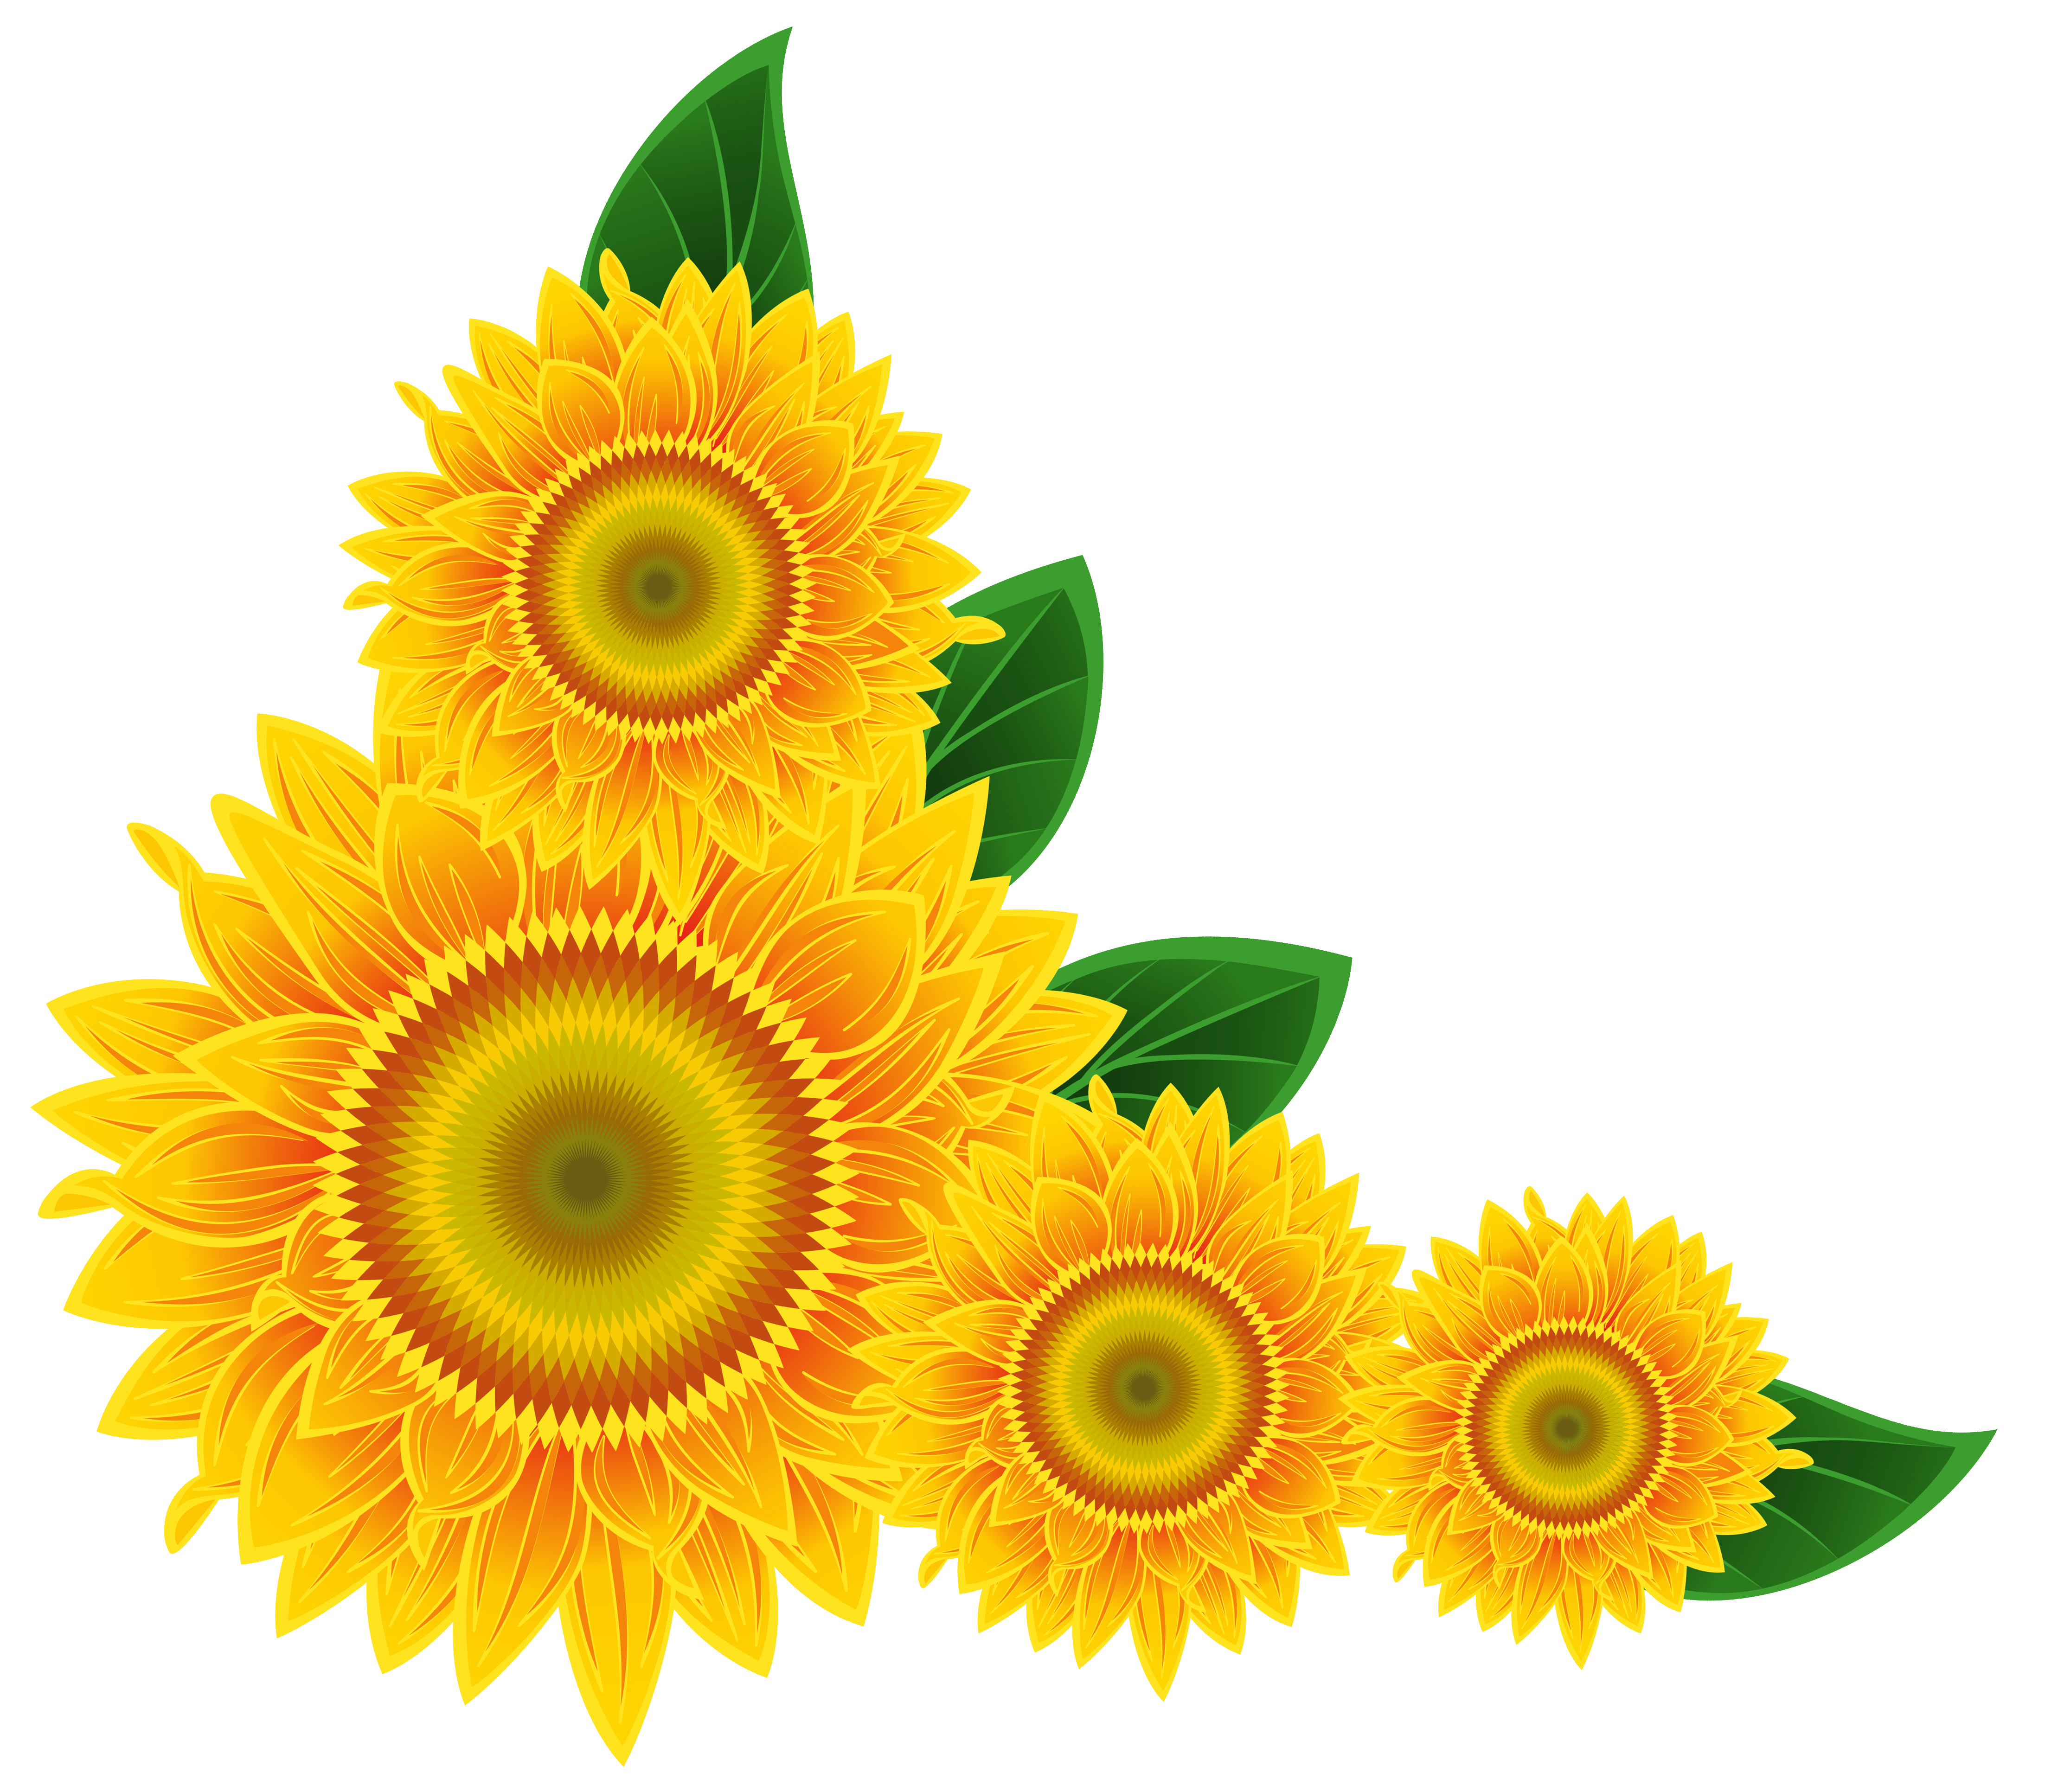 Sunflower decoration png image. Funeral clipart corner